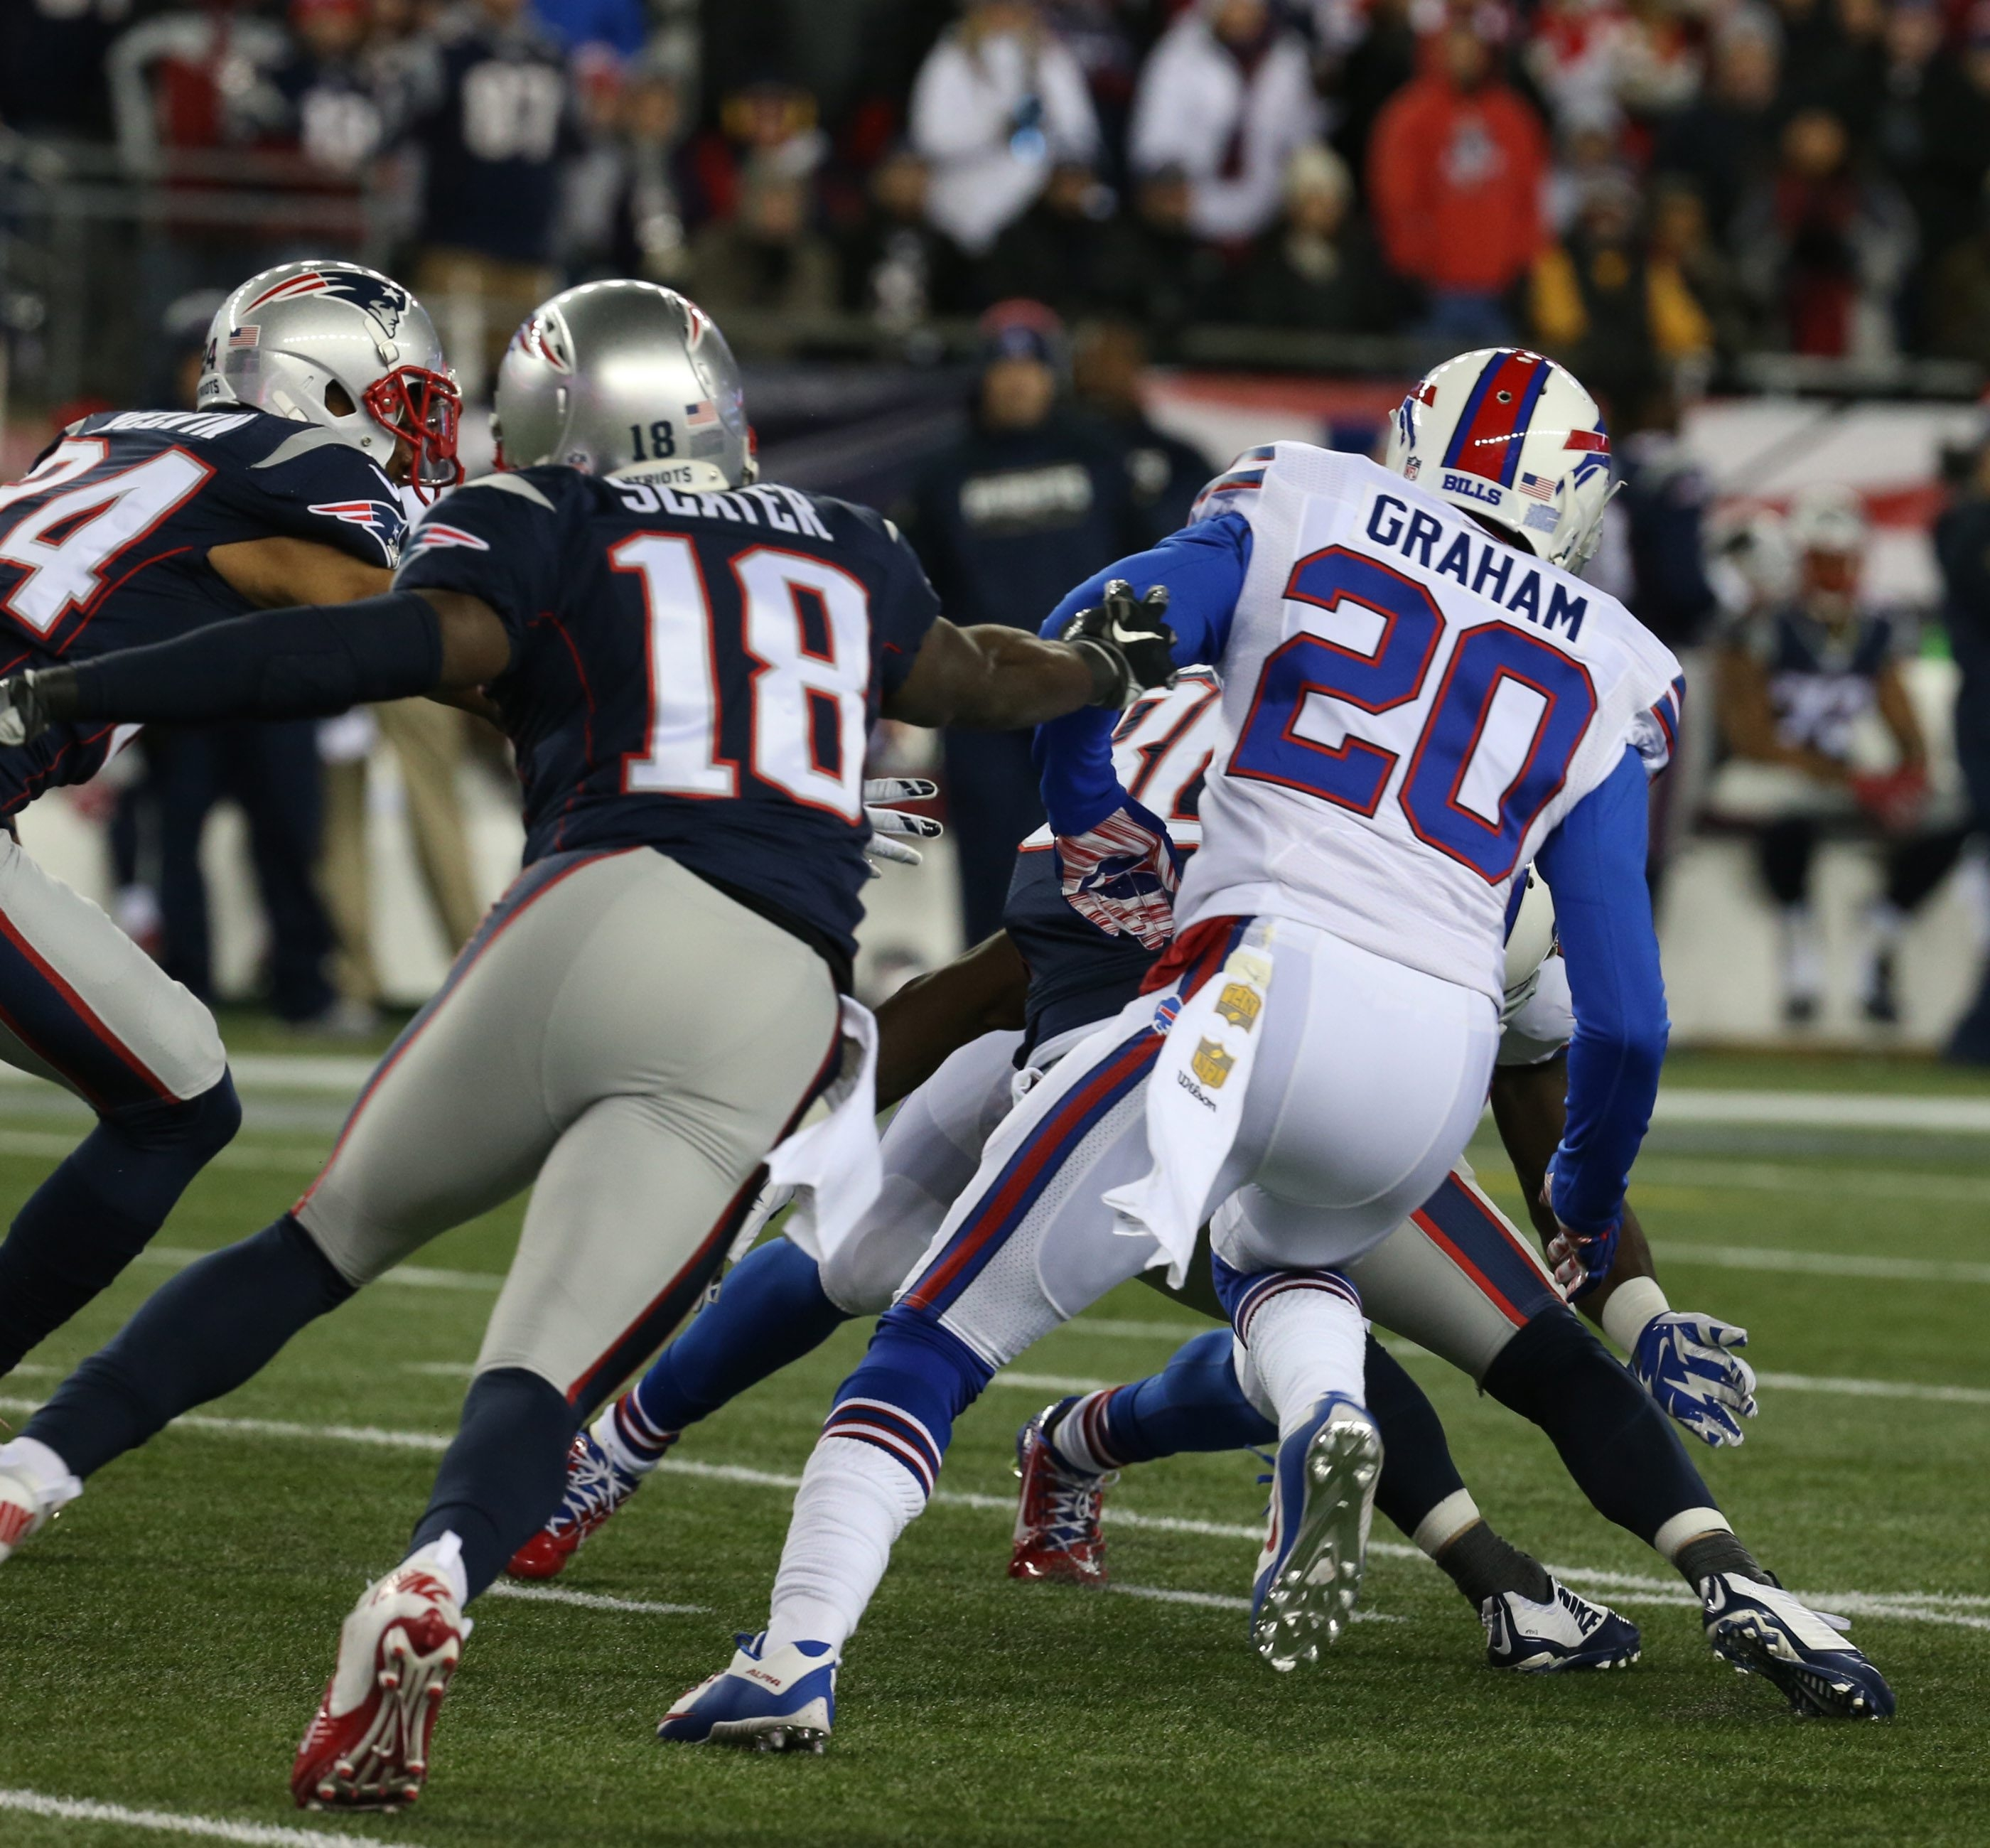 Corey Graham and other Bills players make a tackle in the first quarter of Monday night's game with the Patriots at Gillette Stadium.